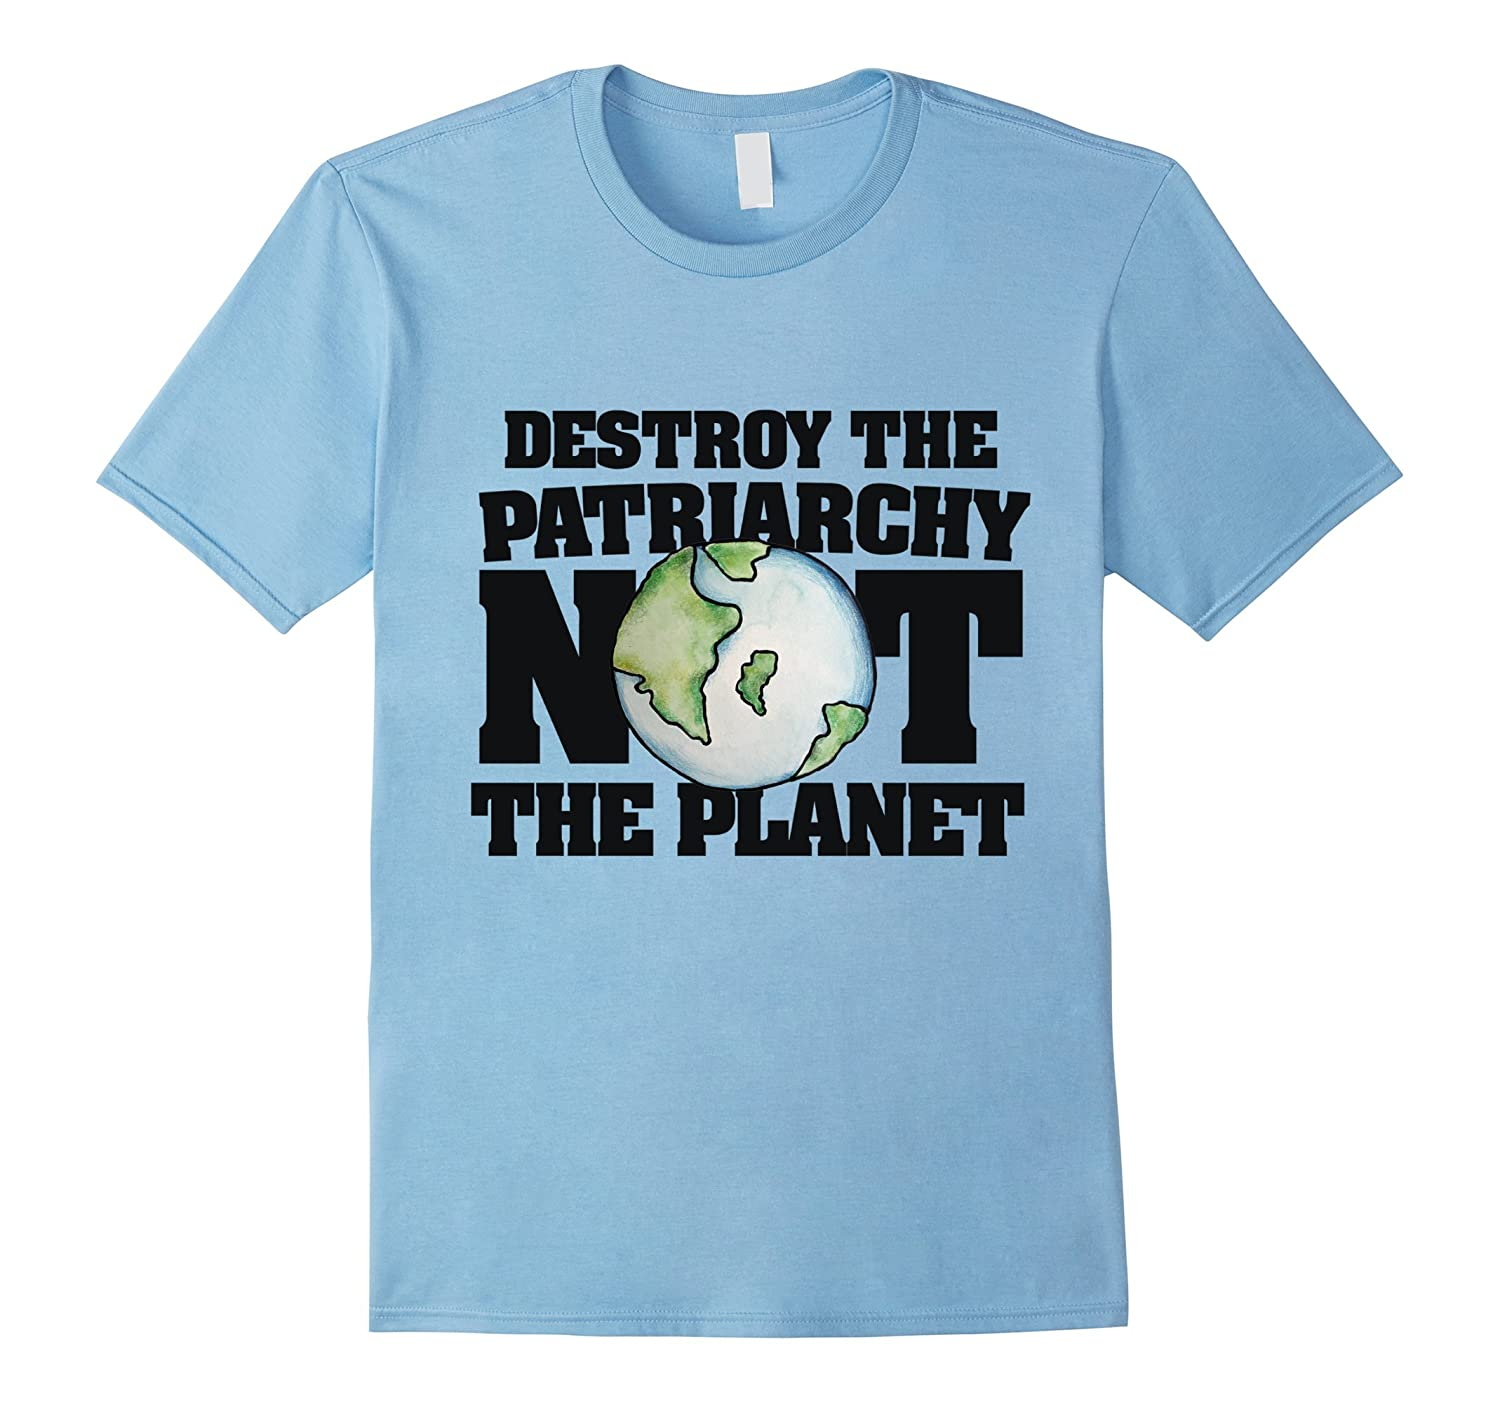 Destroy the Patriarchy not the earth t-shirt feminist earth-TH